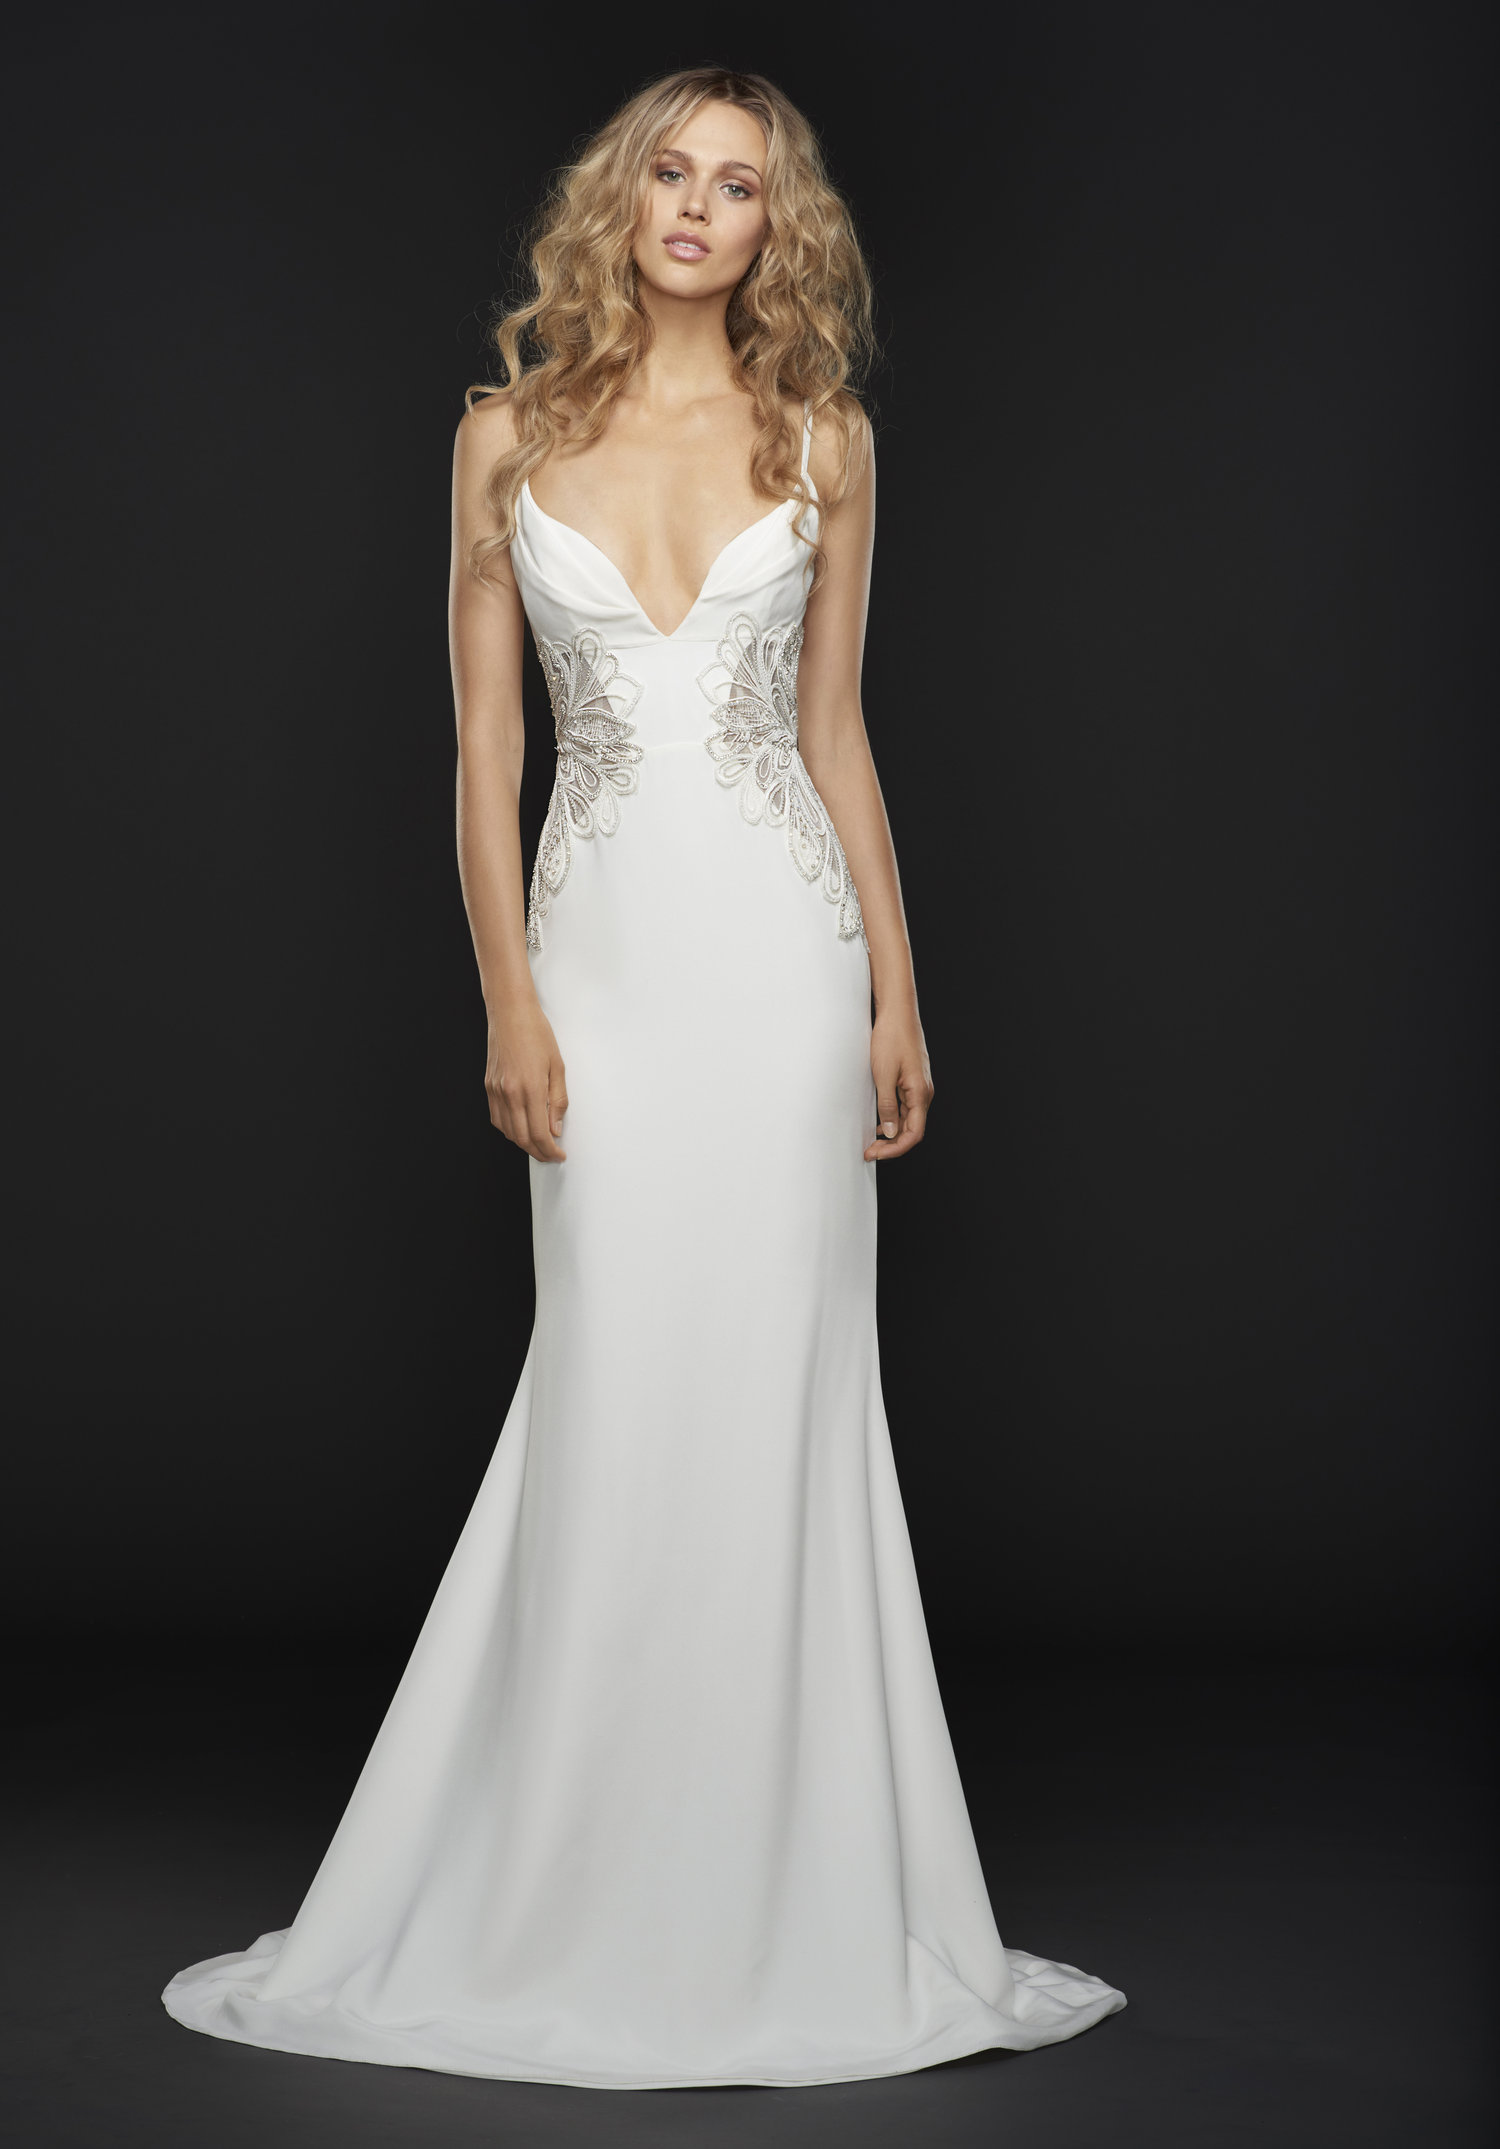 ef1049e0cf The silk fabric and beautiful low-cut back of the Bryn wedding dress will  illuminate under the sun while you say